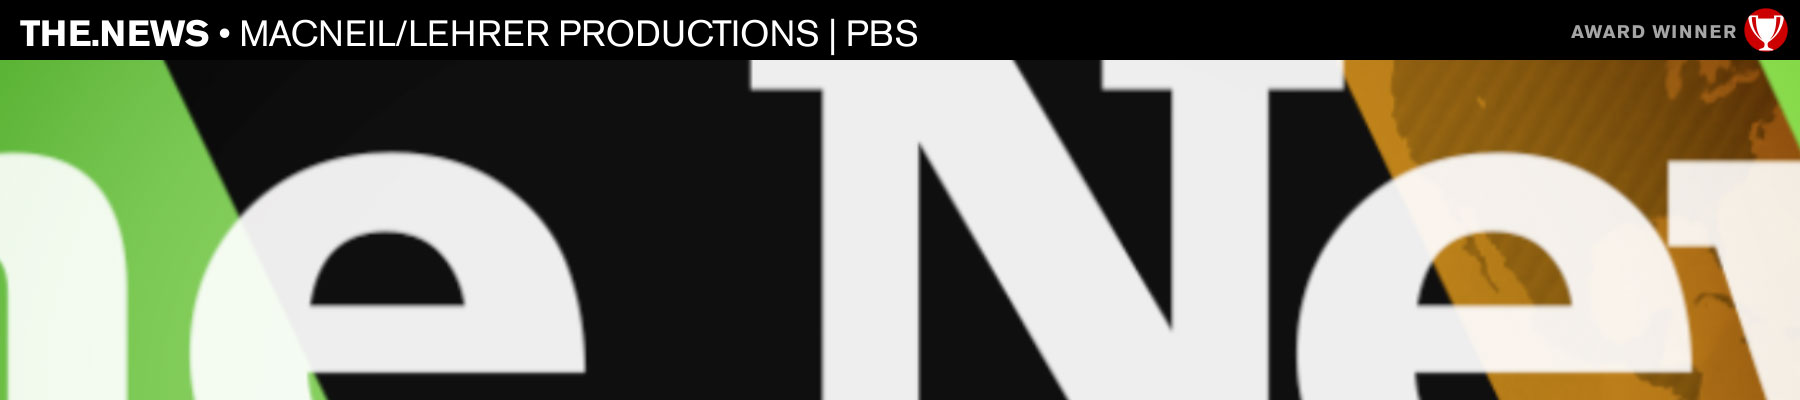 The.News  MacNeil/Lehrer Productions | PBS